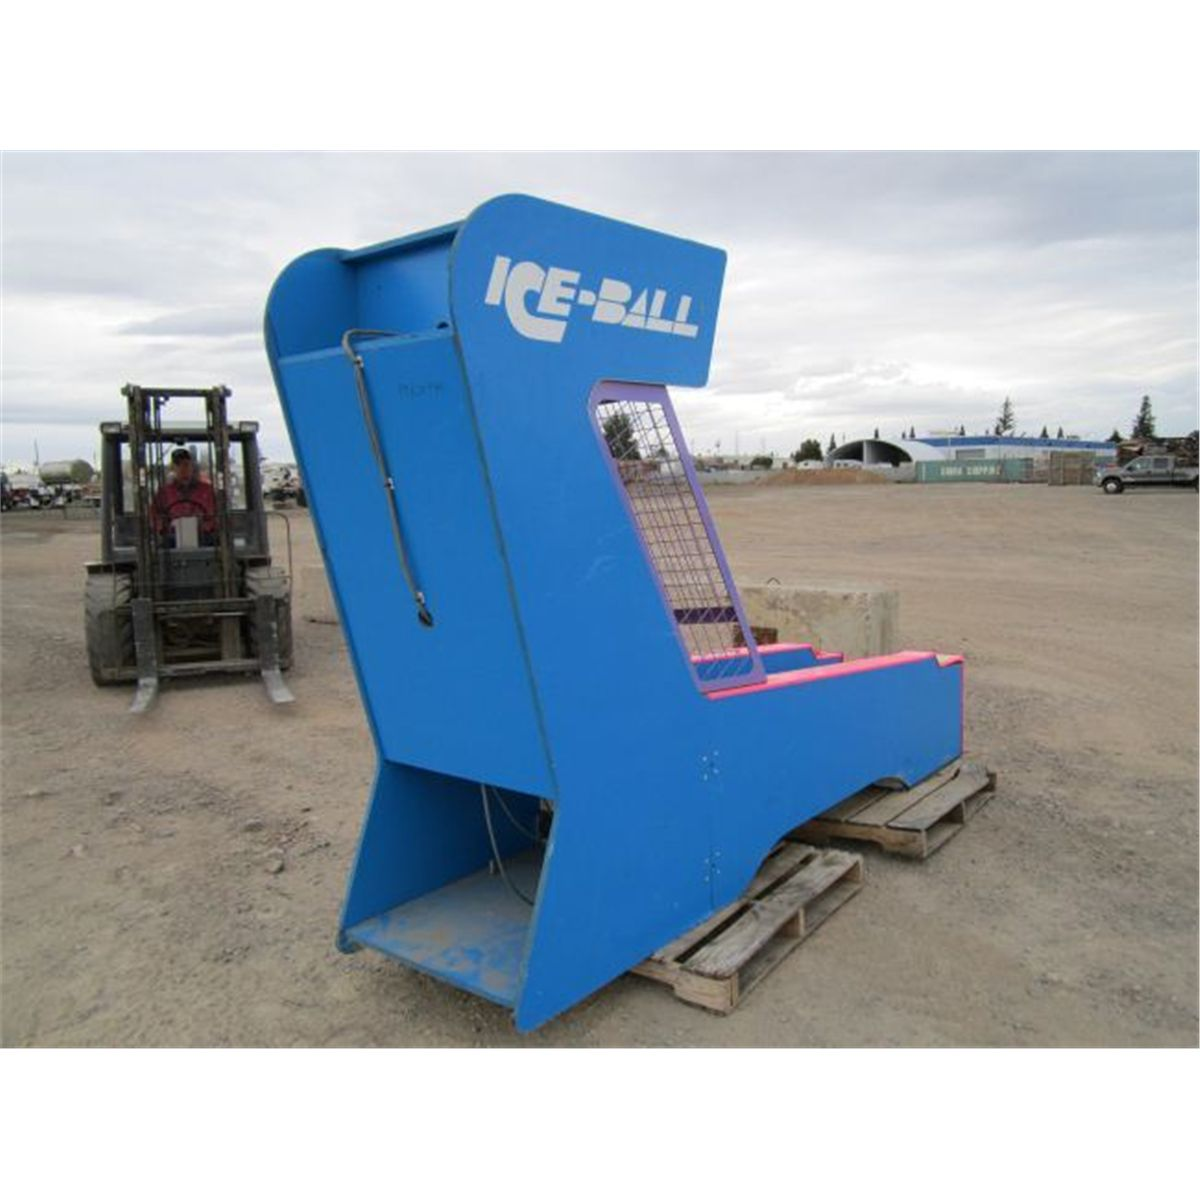 Coin Operated Ice Ball Skee Ball Machine